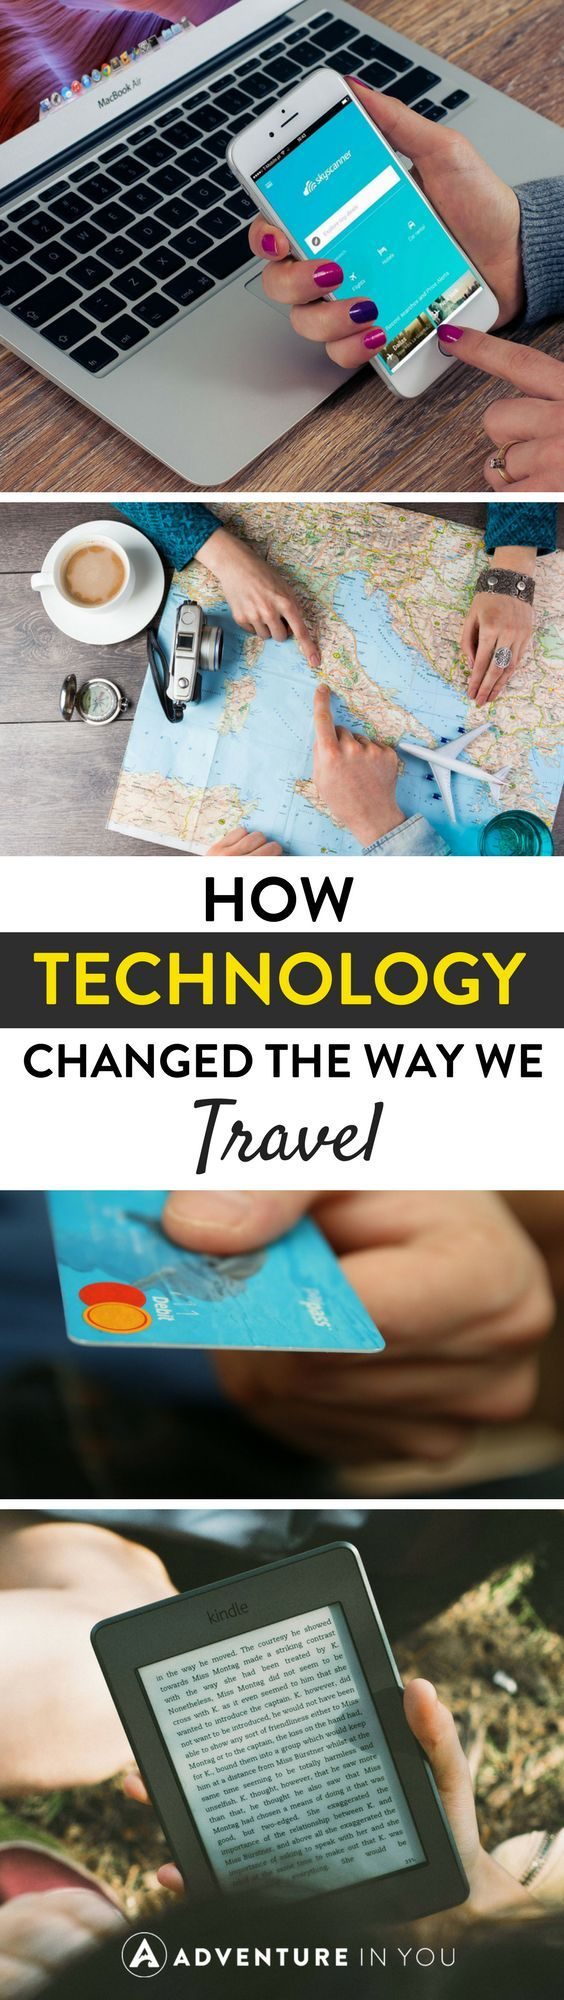 Technology Travel | Wondering how travel will be like without your favorite apps? Ebooks? How about your favorite flight search engine? Here are a few ways technology has changed the way we travel.